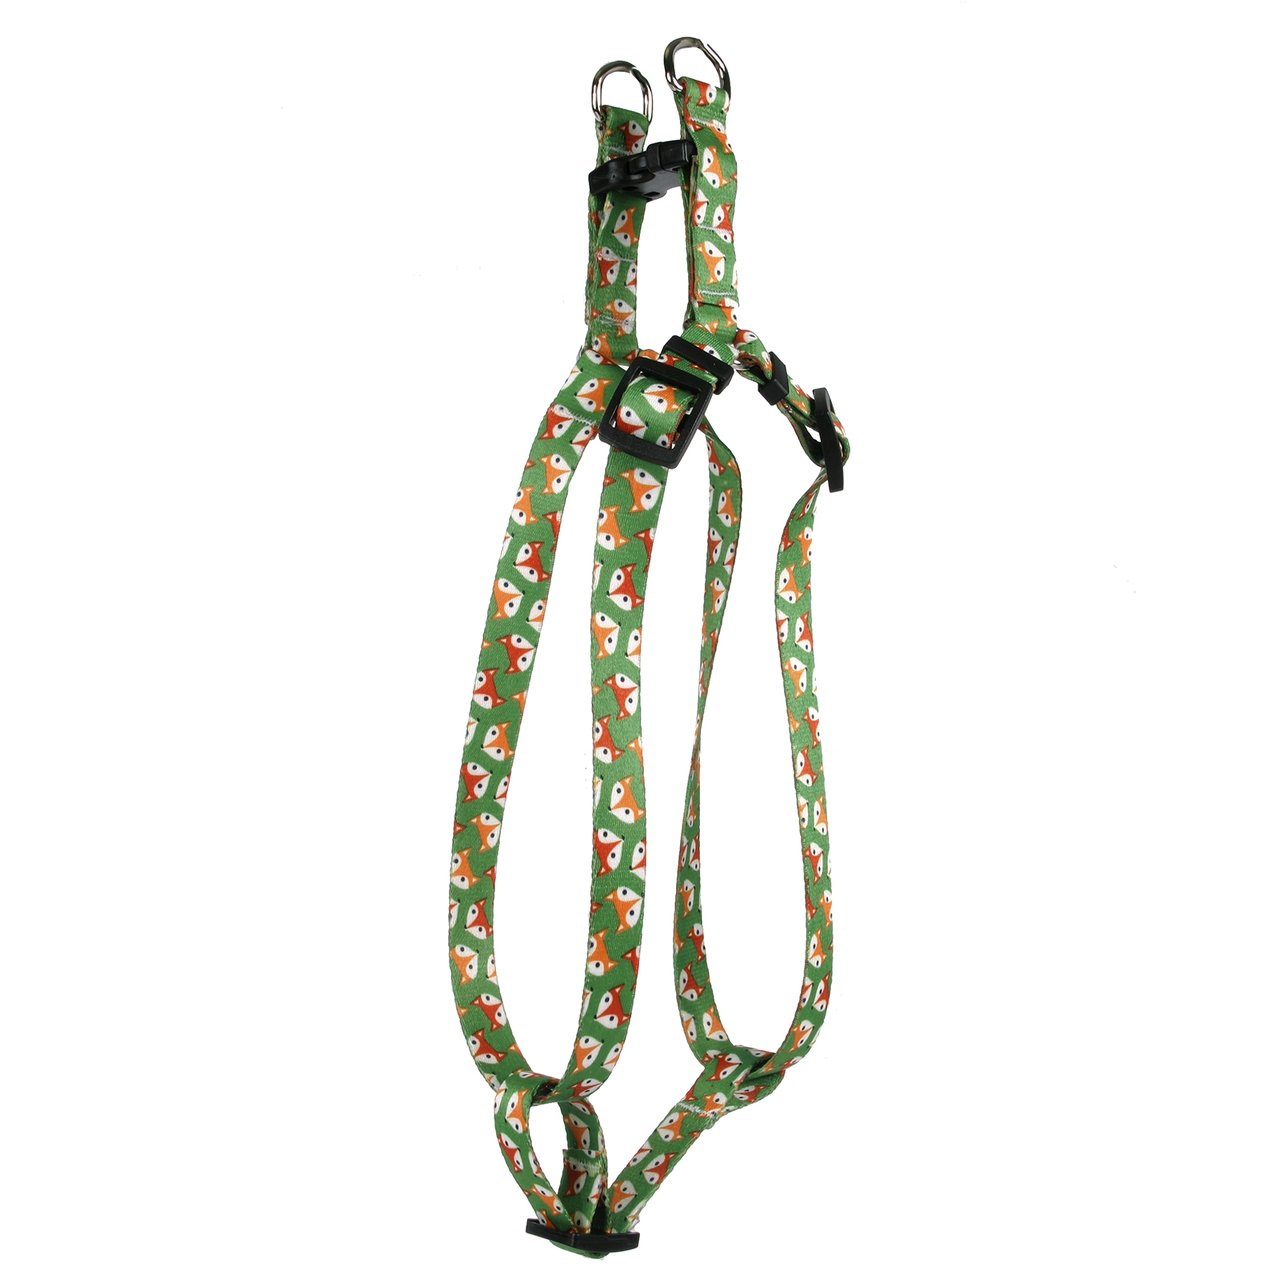 Yellow Dog Design Foxy Step-In Dog Harness 3/8'' Wide And Fits Chest Circumference Of 4.5 To 9'', X-Small